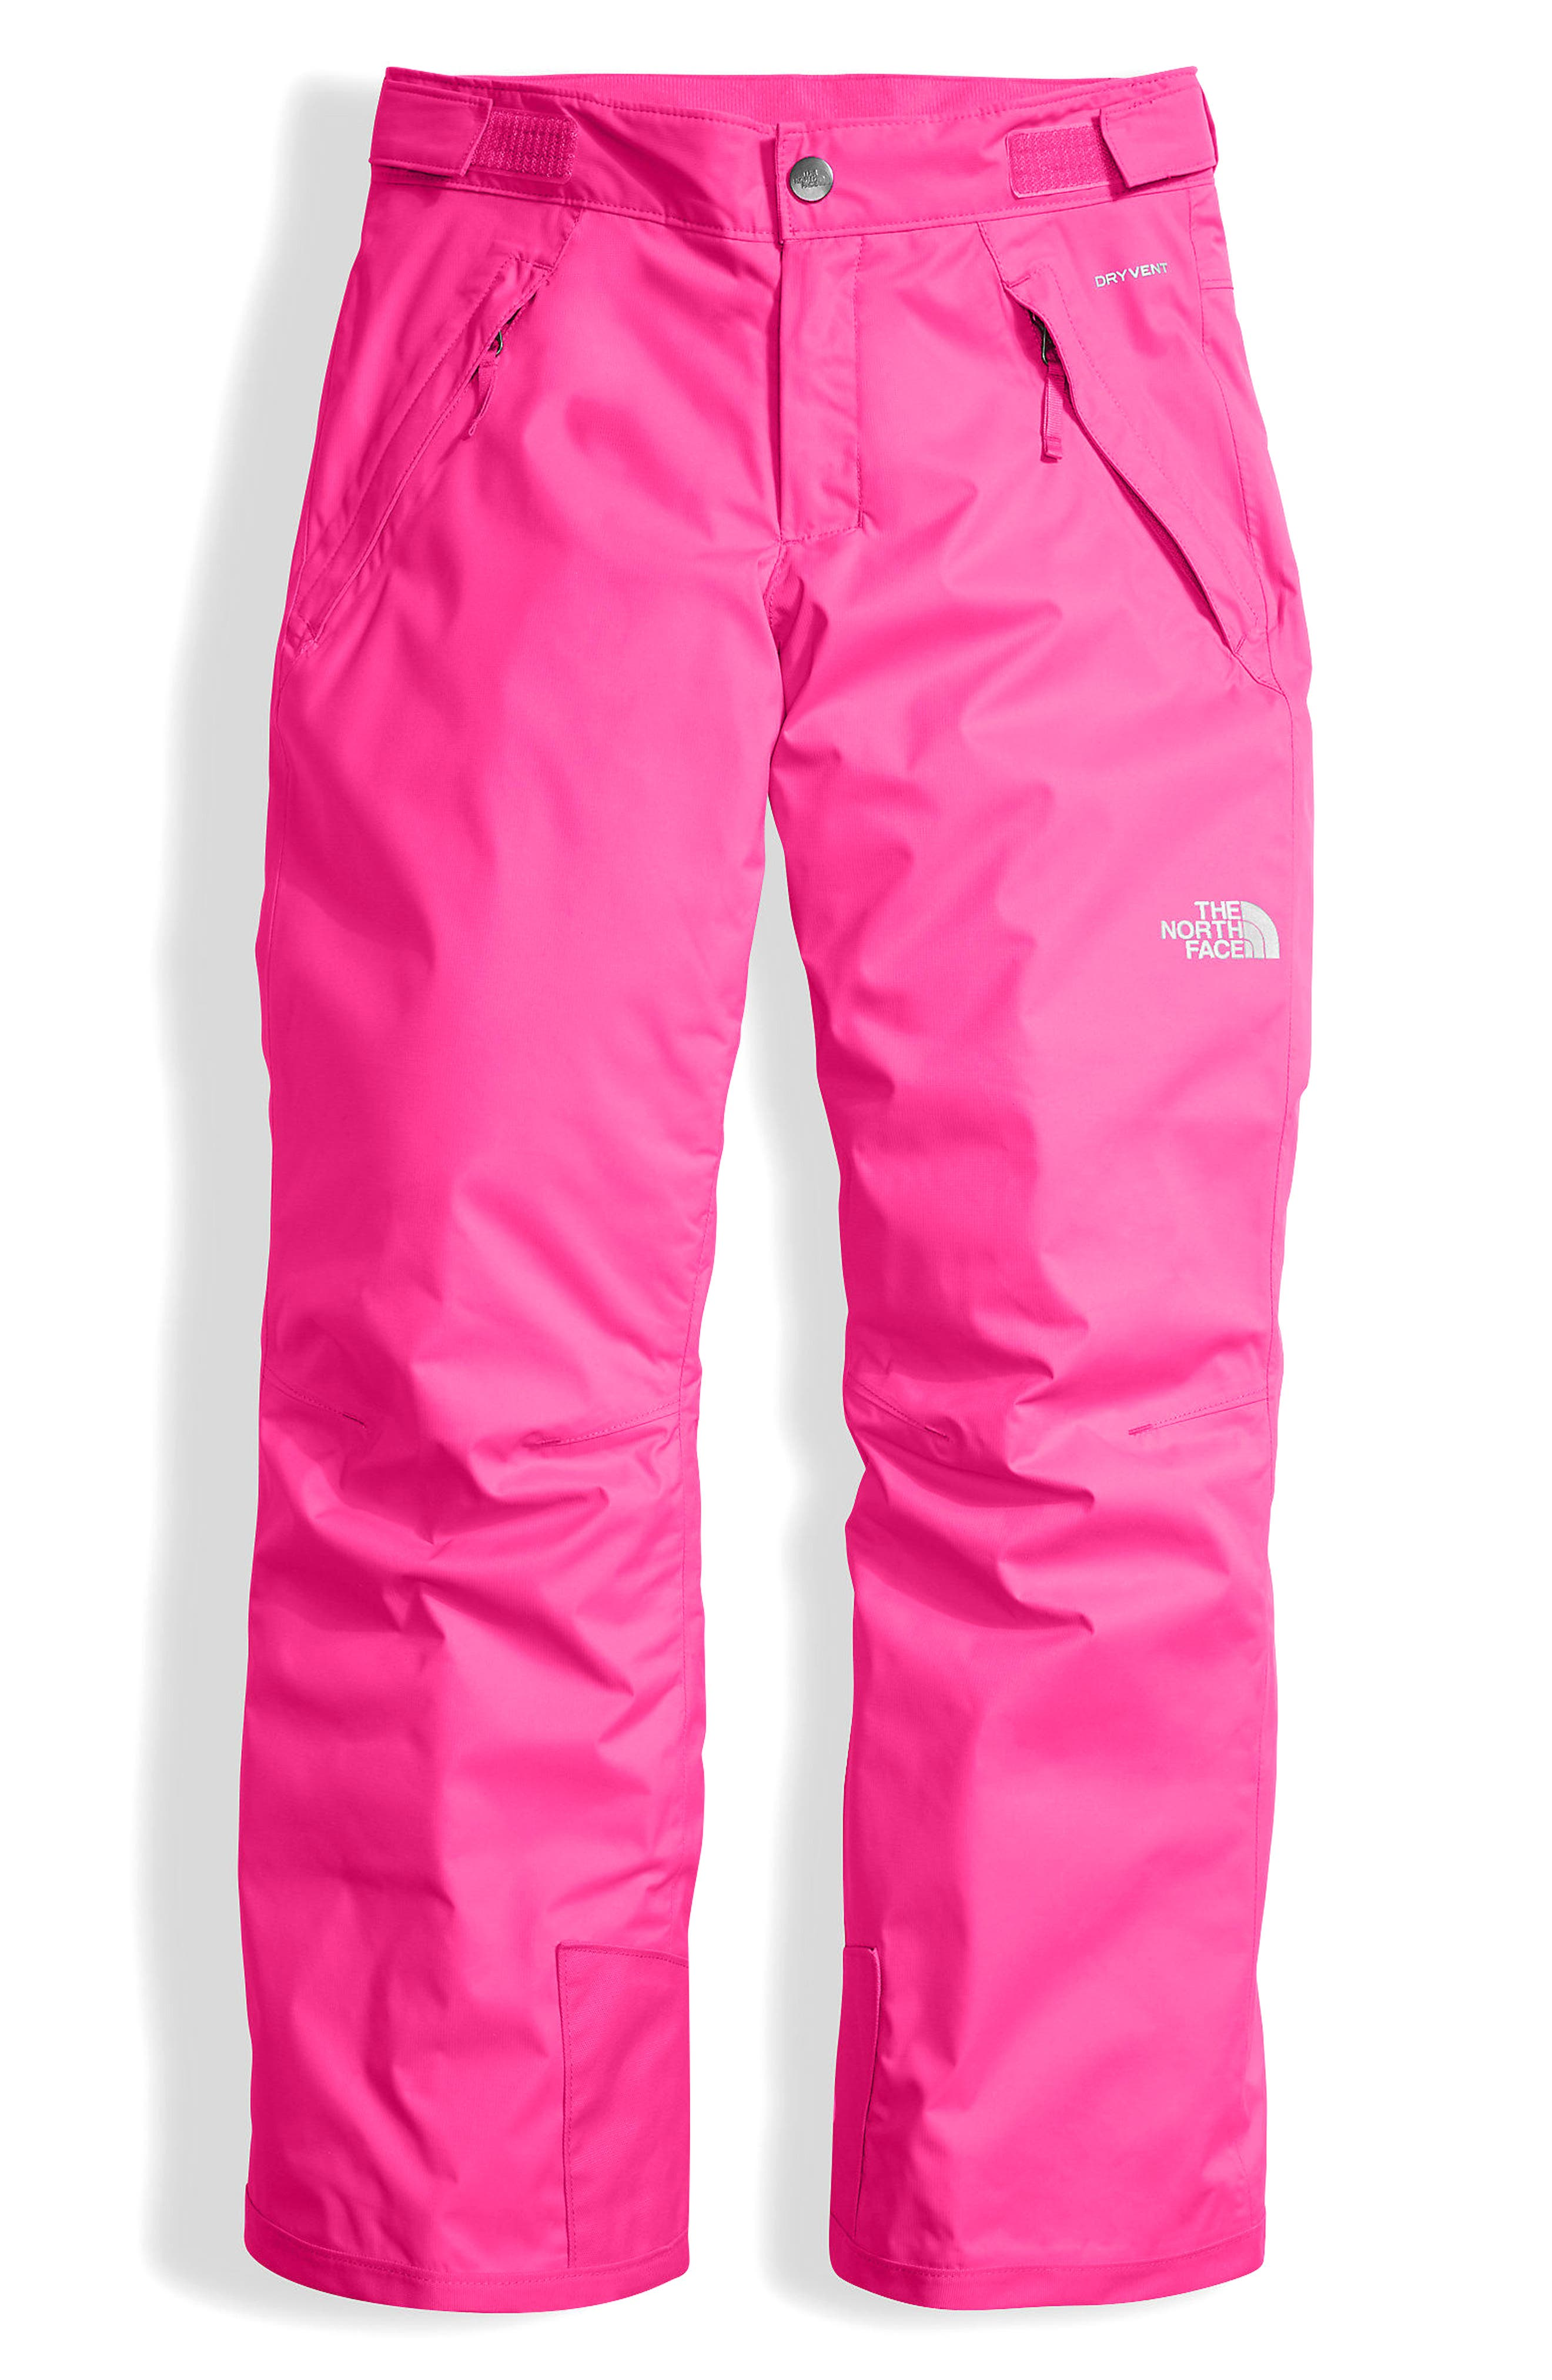 Alternate Image 1 Selected - The North Face Freedom Waterproof Heatseeker™ Insulated Snow Pants (Big Girls)